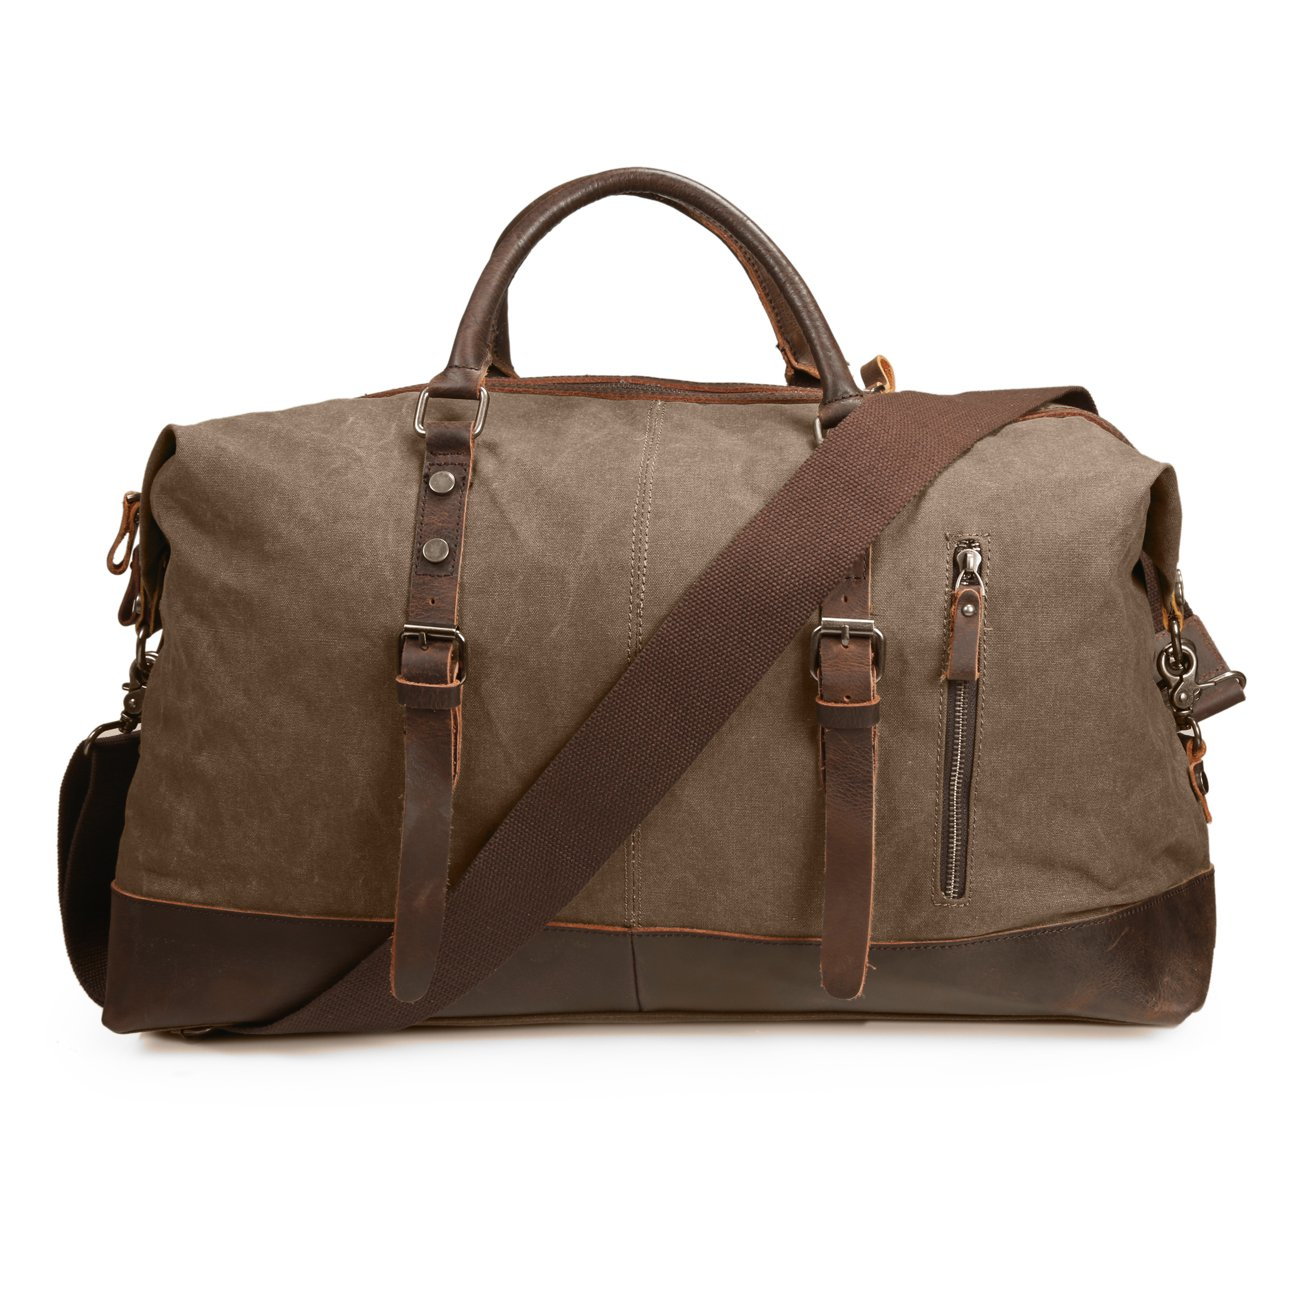 Amazon.com  ECOSUSI Vintage Canvas Sport Tote Gym Bag Overnight Shoulder Bag  Weekend Travel Duffel Bag Coffee  Sports   Outdoors 2af48ab59057d